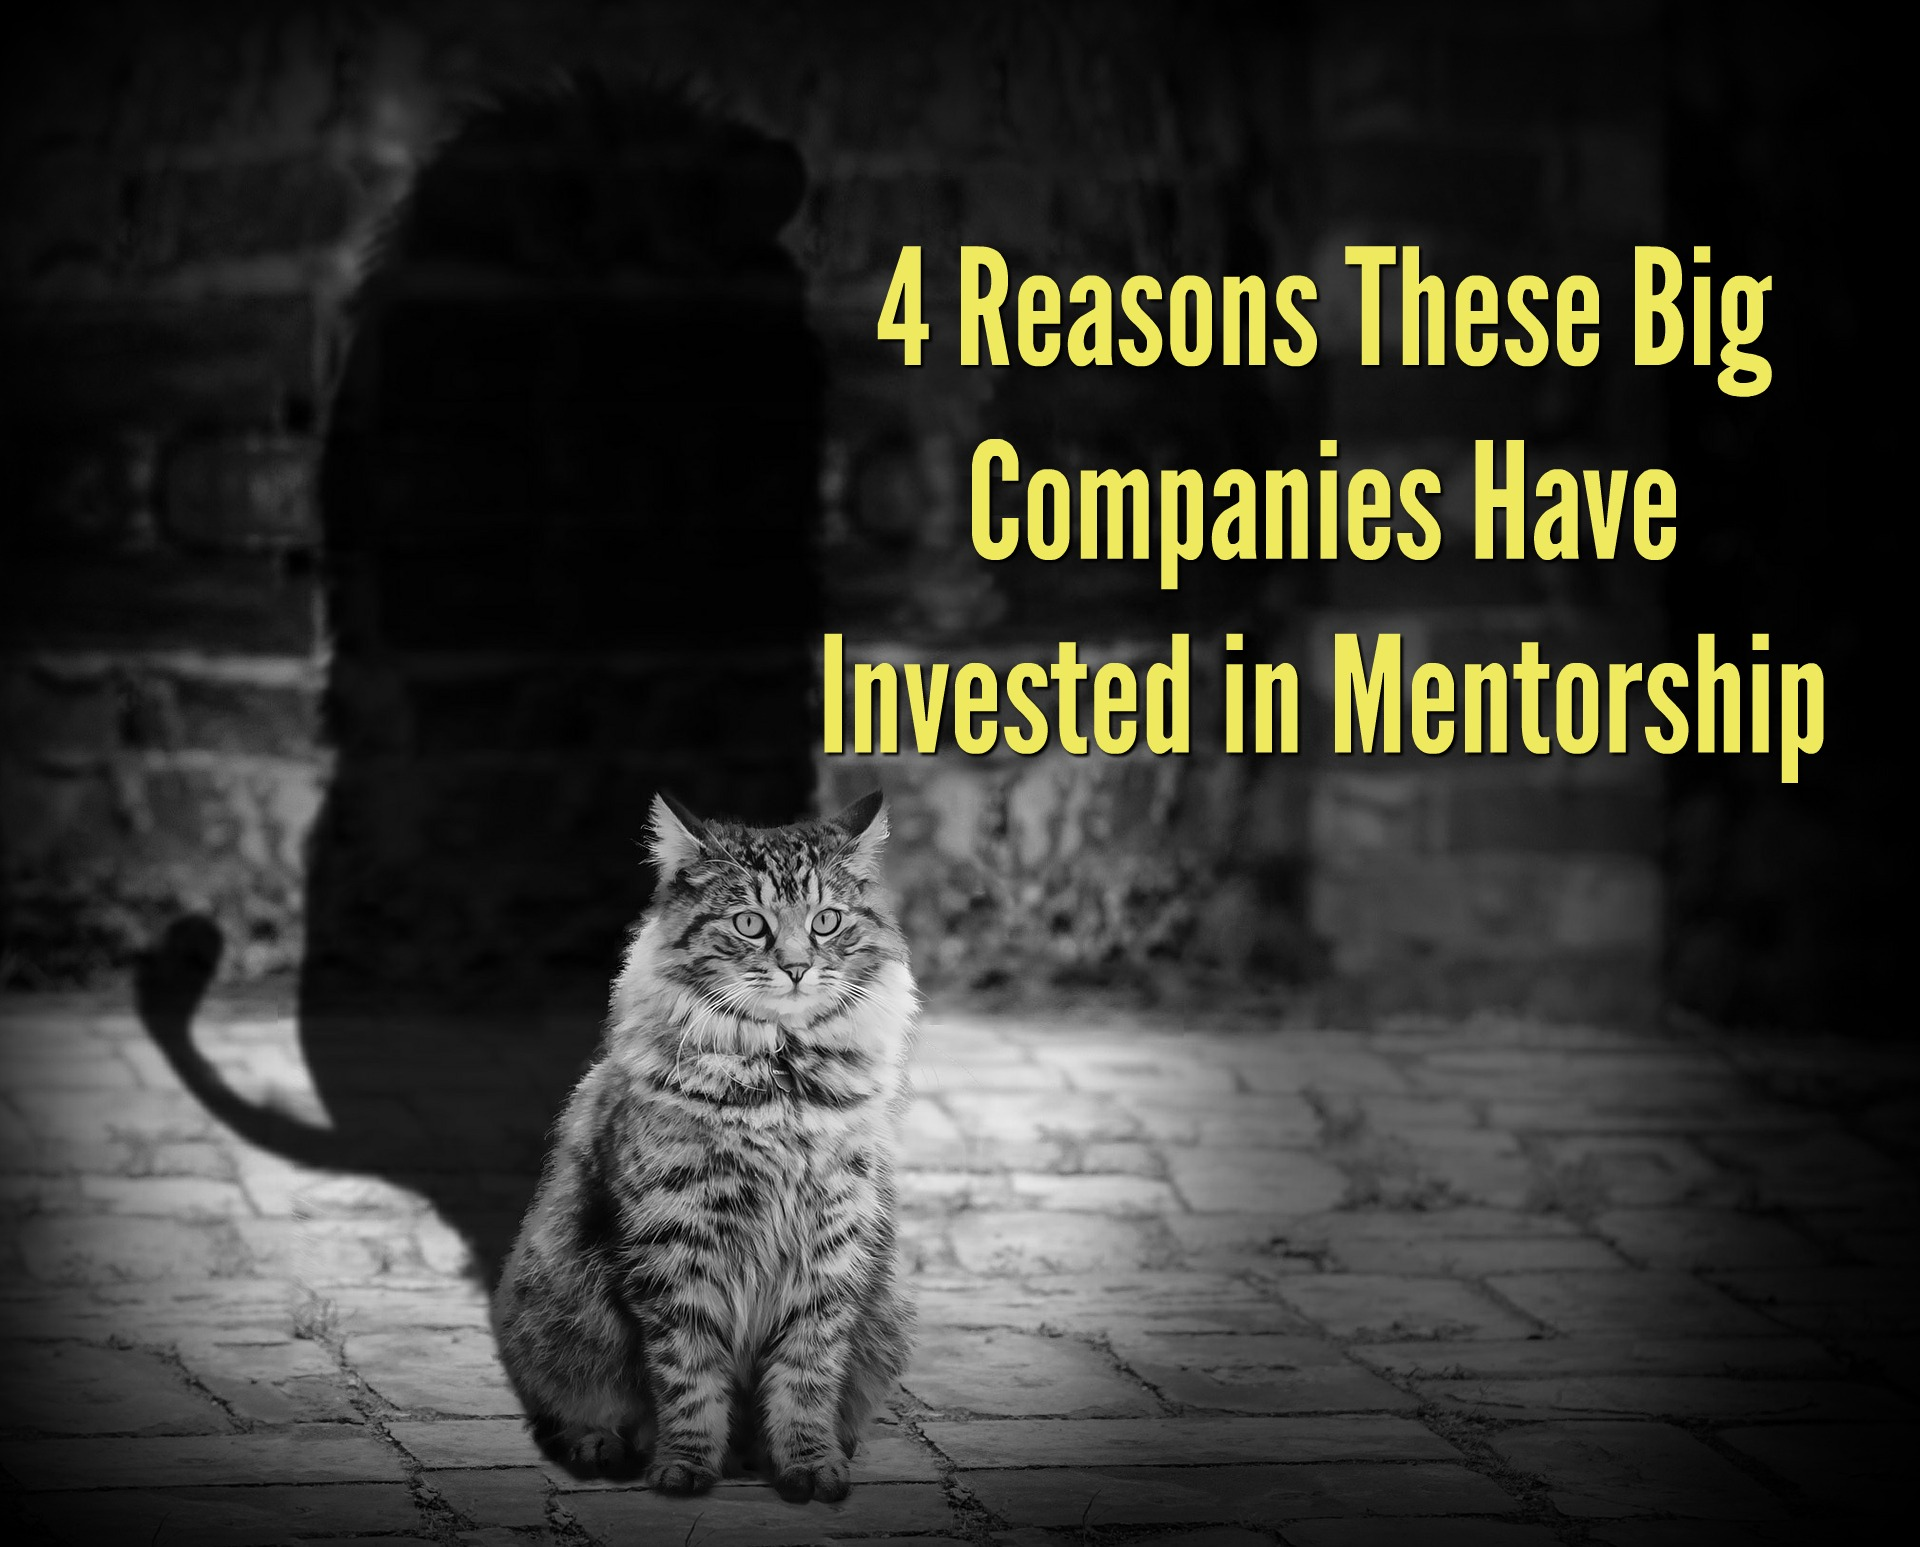 4 Reasons These Big Companies Have Invested in Mentorship.jpg